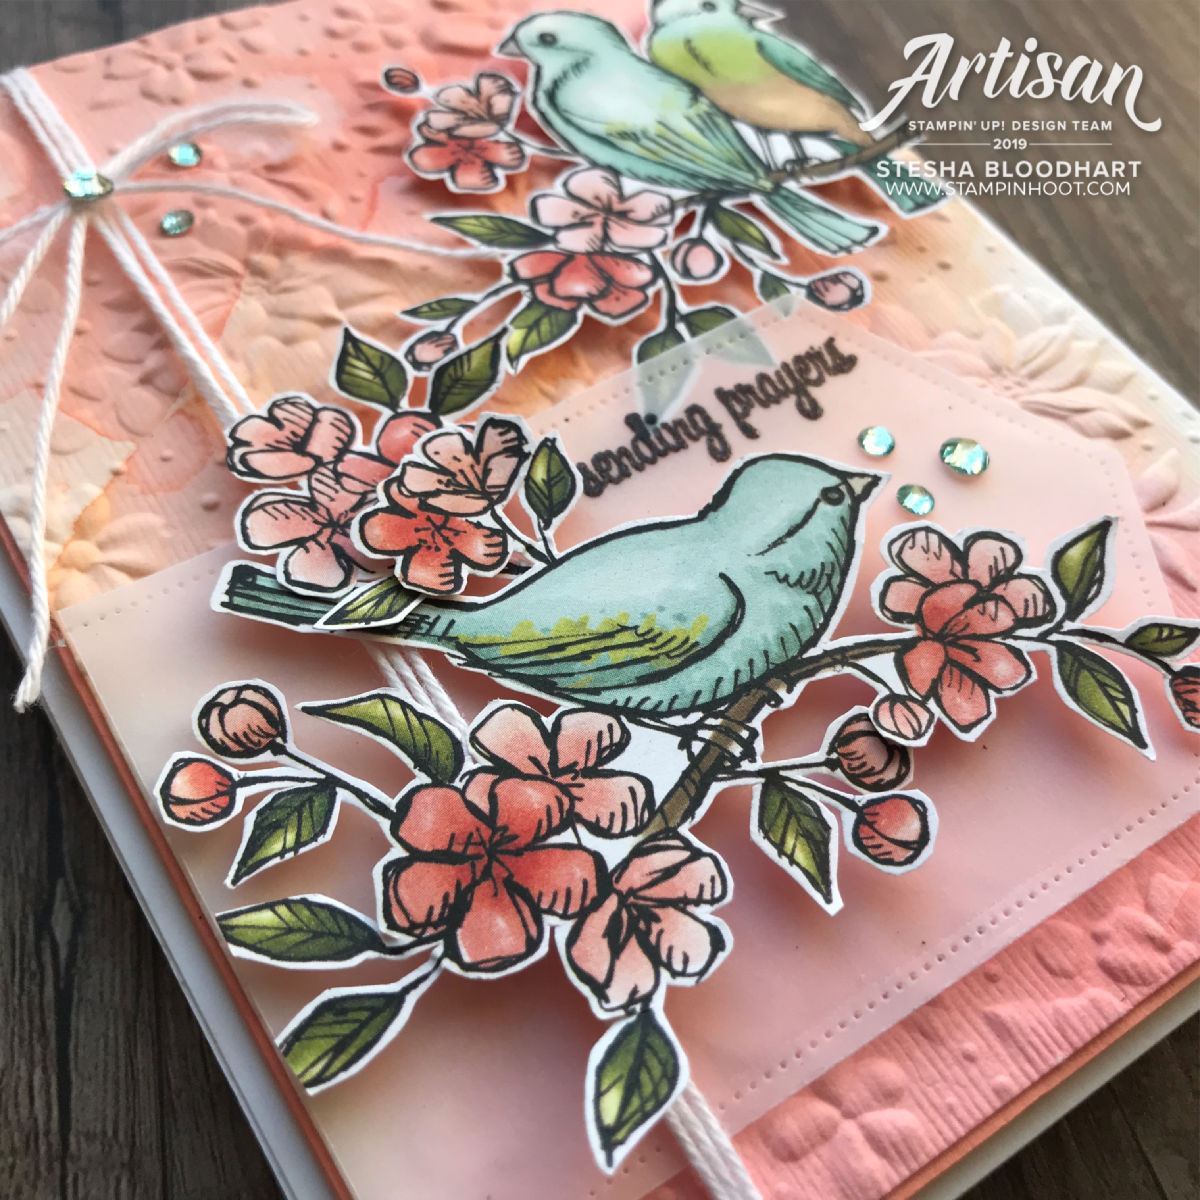 Country Floral 3D Embossing Folder & Bird Ballad Designer Series Paper by Stampin' Up! Card created by 2019 Artisan Stesha Bloodhart, Stampin' Hoot!